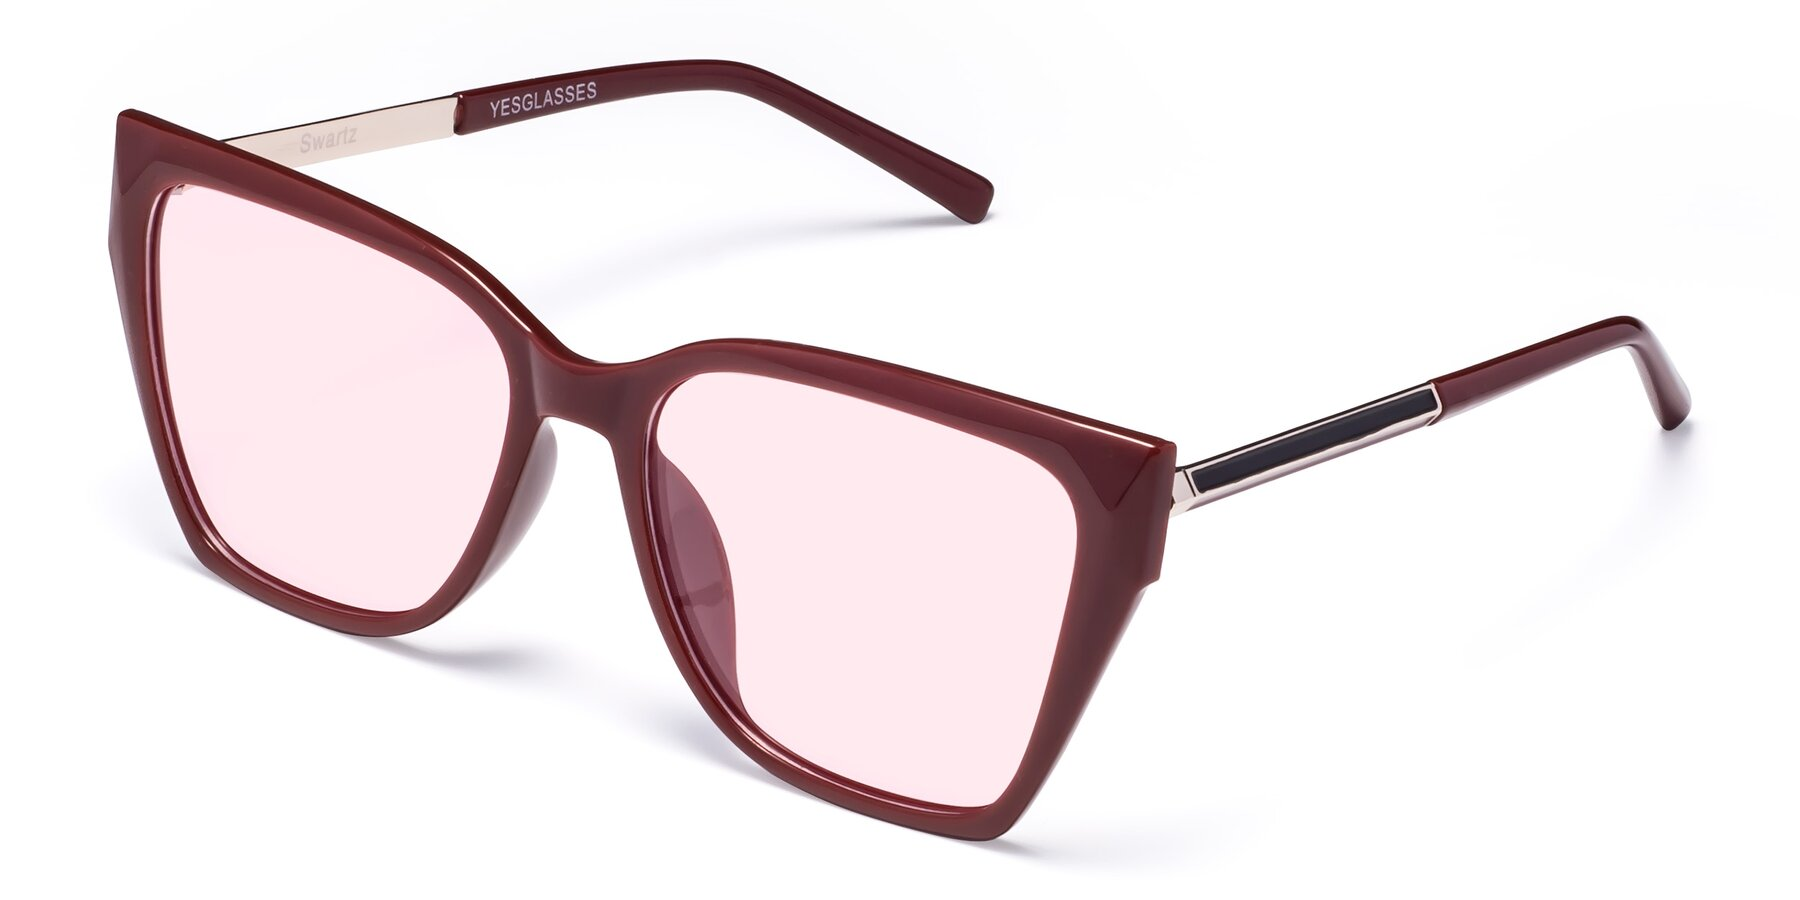 Angle of Swartz in Wine with Light Pink Tinted Lenses